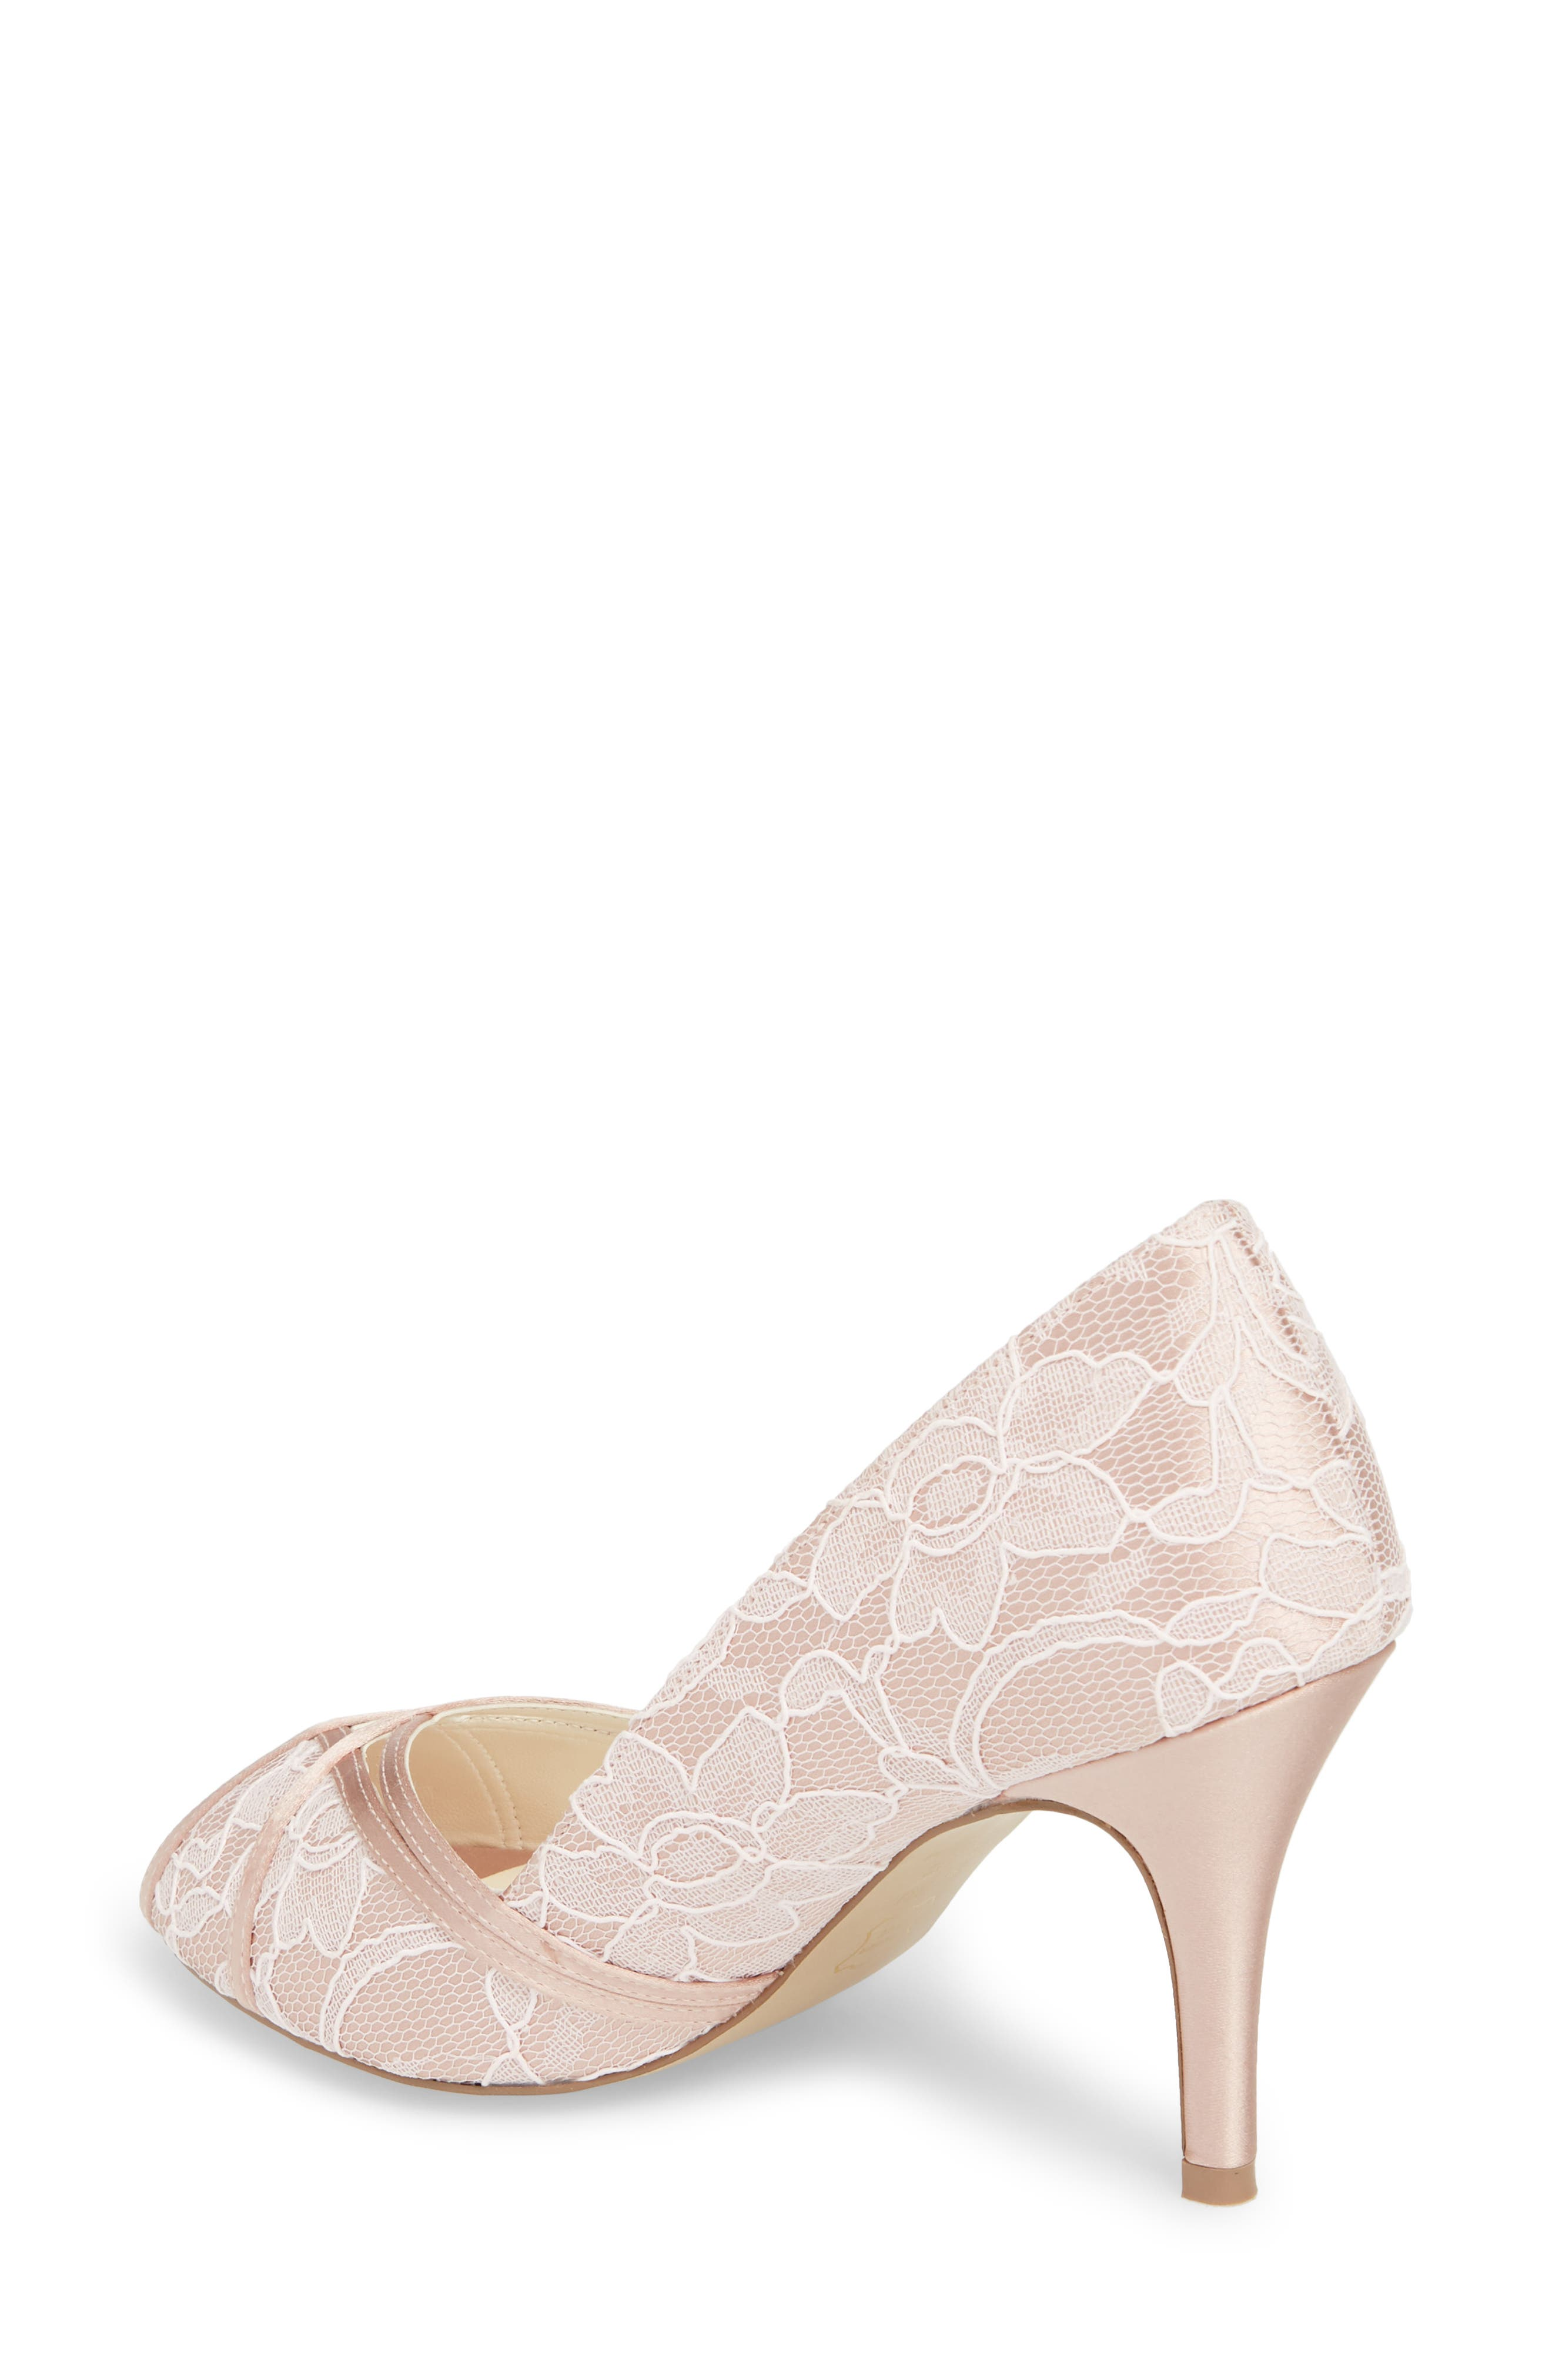 Cherie Embroidered Peep Toe Pump,                             Alternate thumbnail 2, color,                             BLUSH SATIN